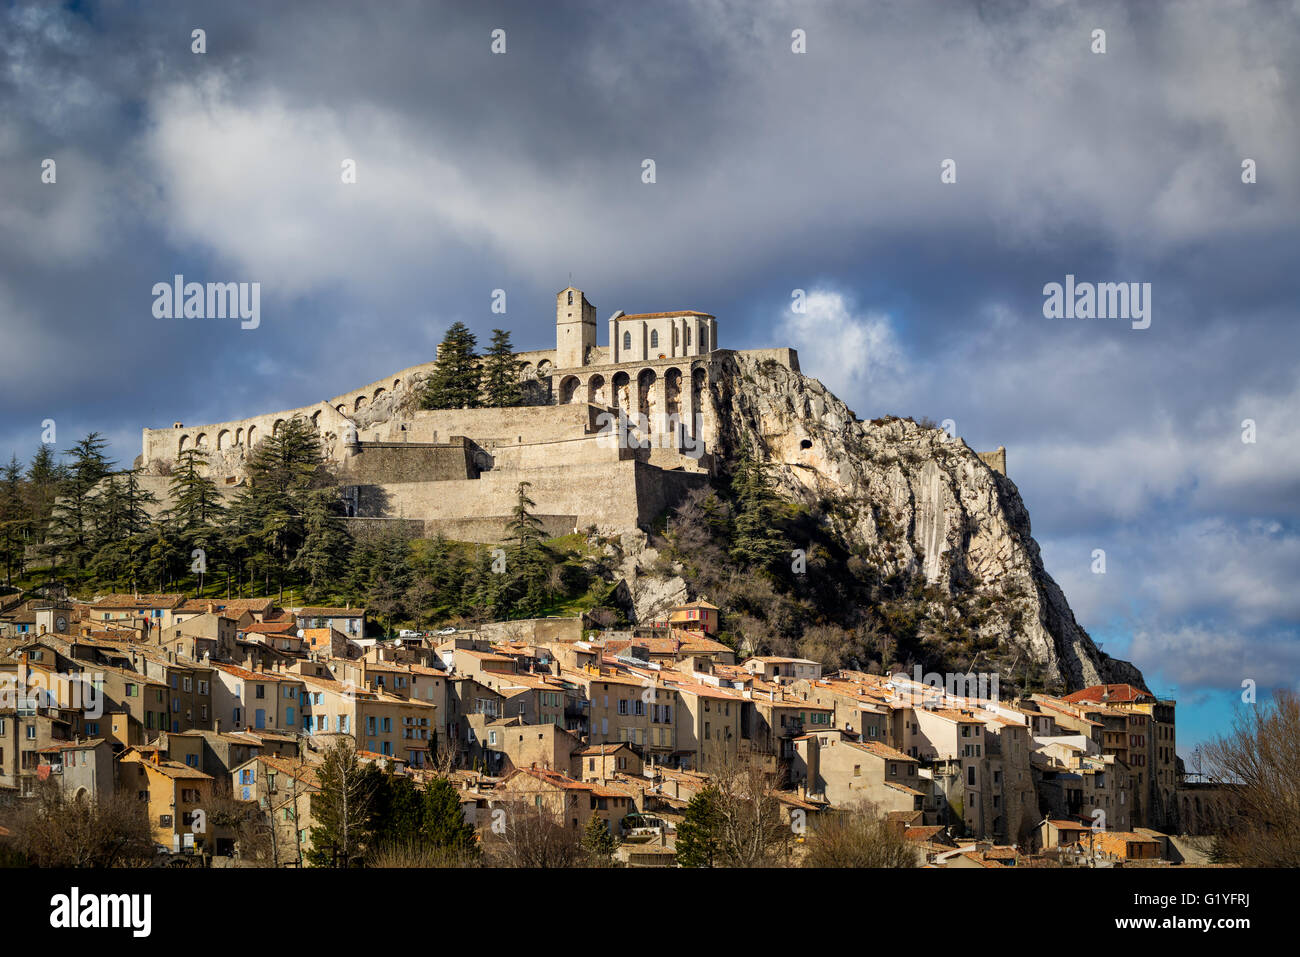 Sisteron Citadel, fortifications and rooftops with summer clouds. Southern Alps, Alpes de Haute Provence, Durance - Stock Image